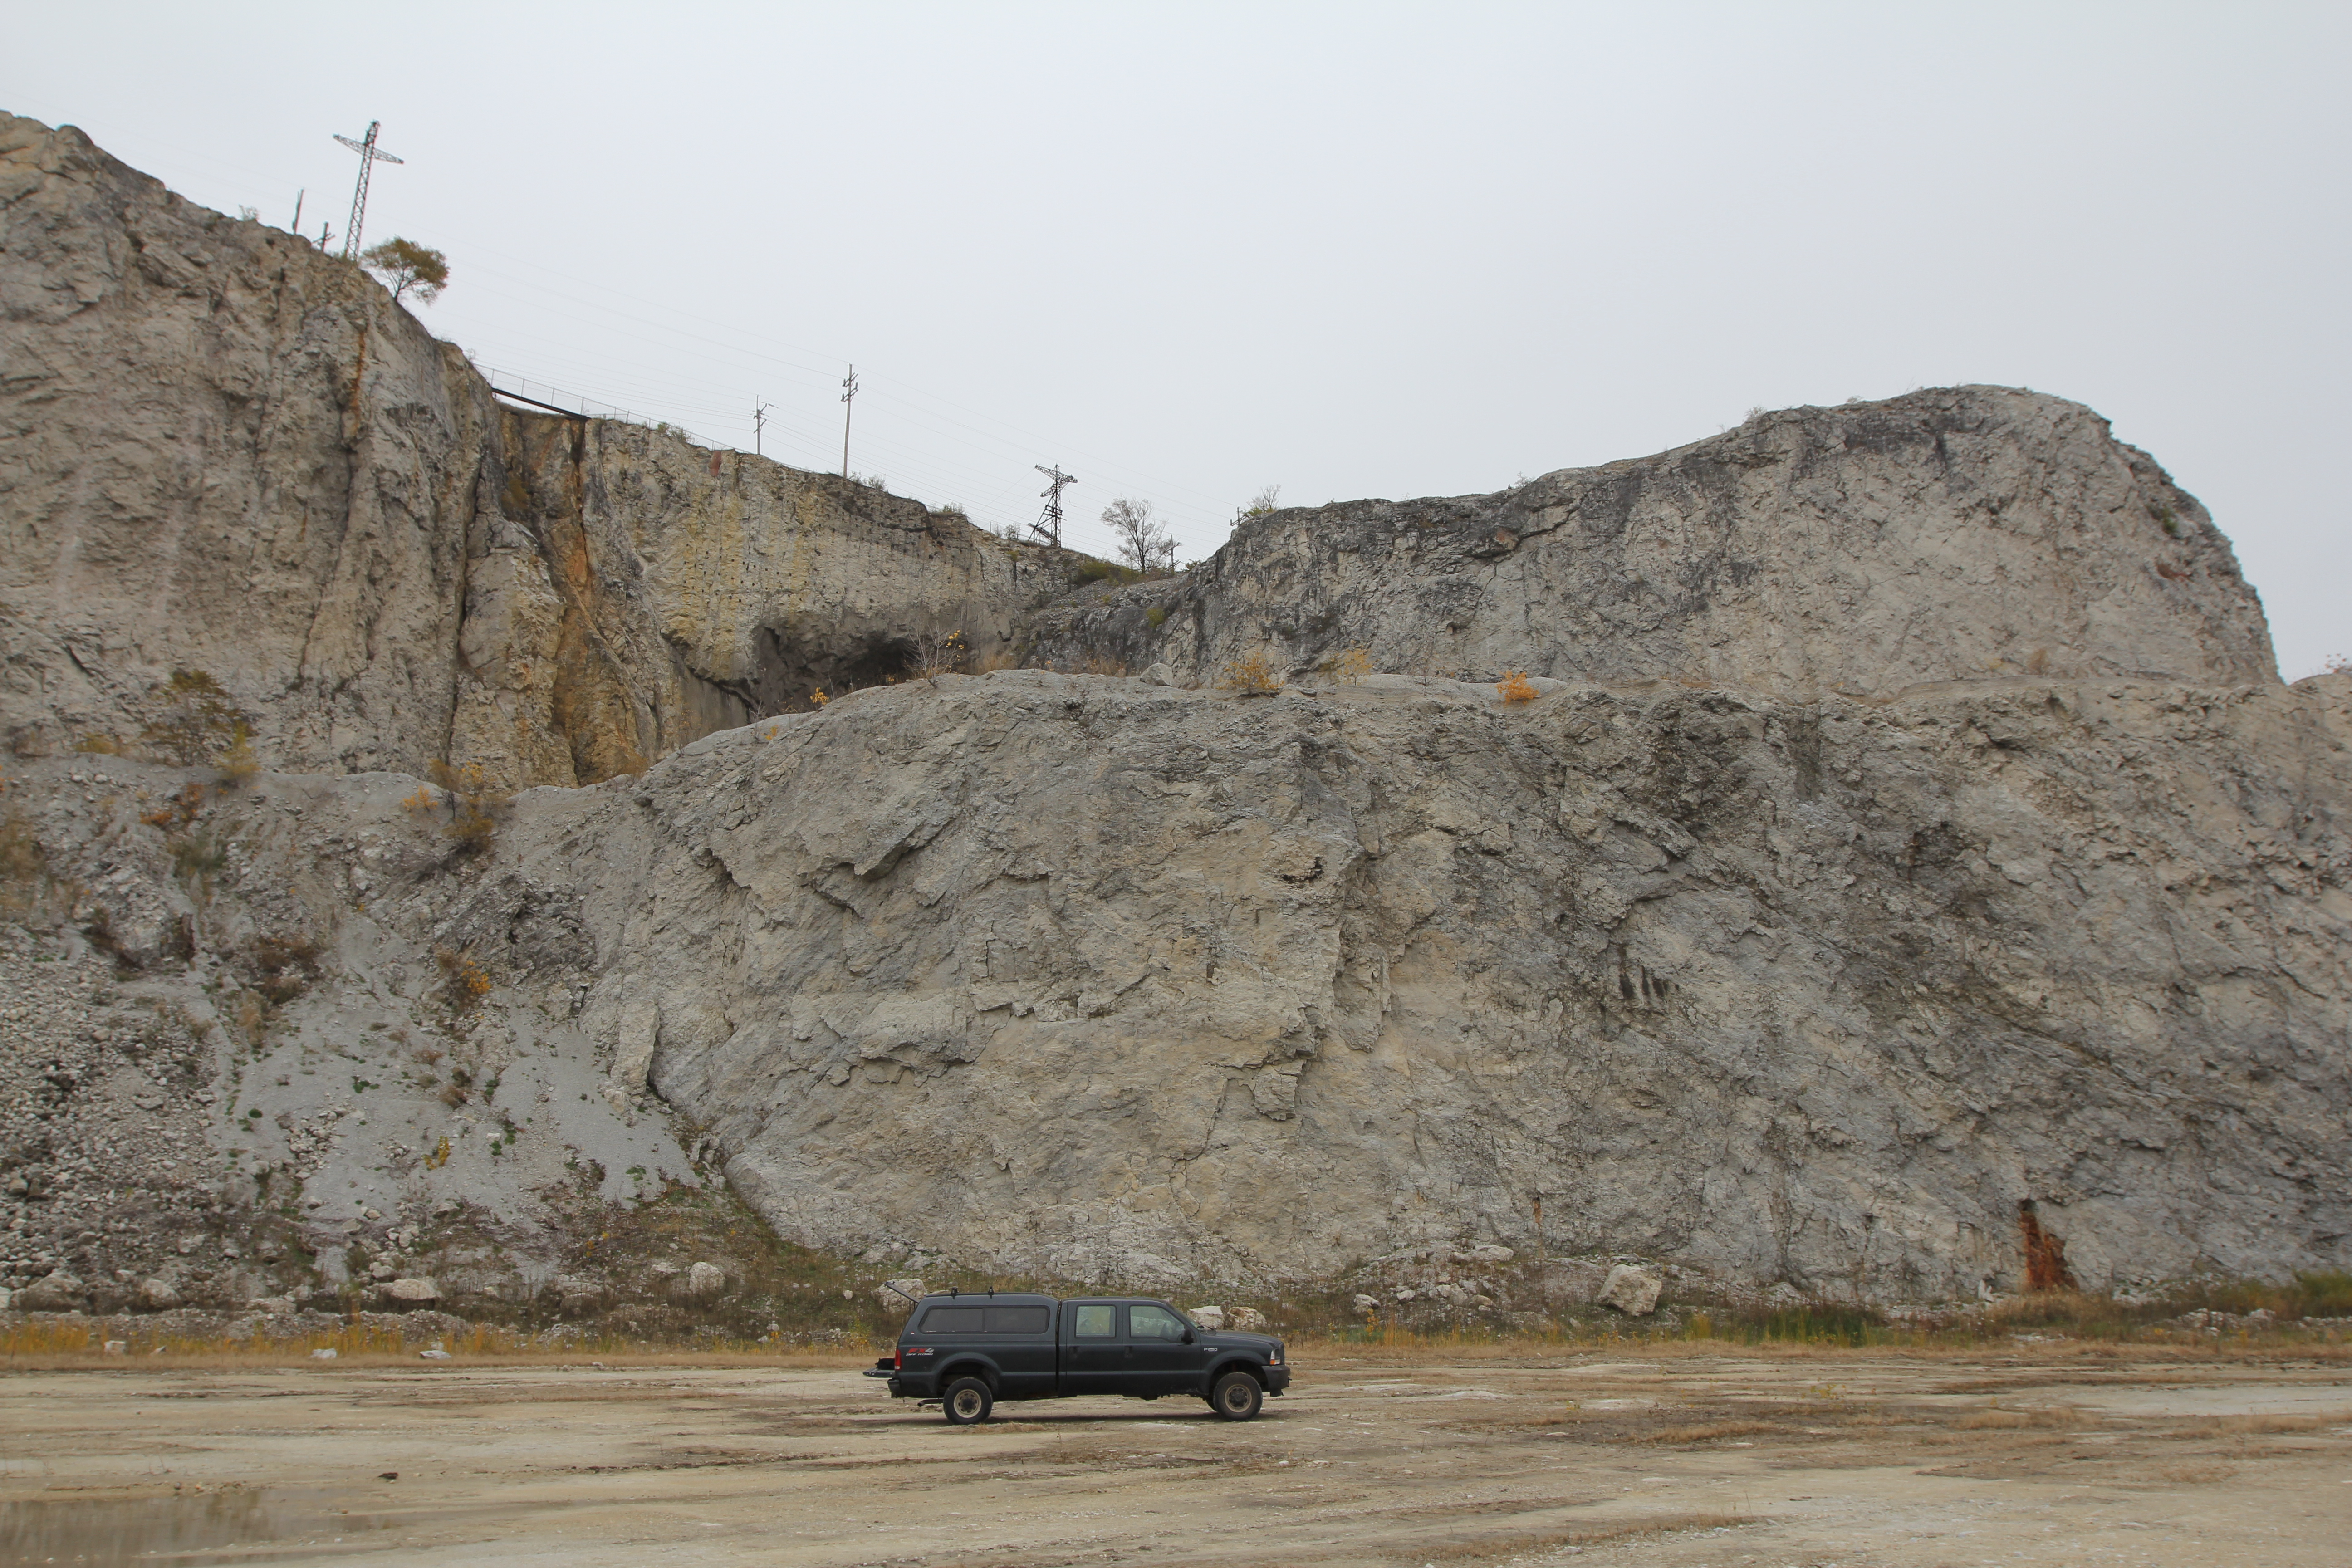 Reef core with flank beds dipping off of it to the right and left at Hanson Material Service Quarry (Thornton Quarry). (Note pick-up truck for scale.)  The tunnel just visible over the top of the reef core leads to another quarry pit.